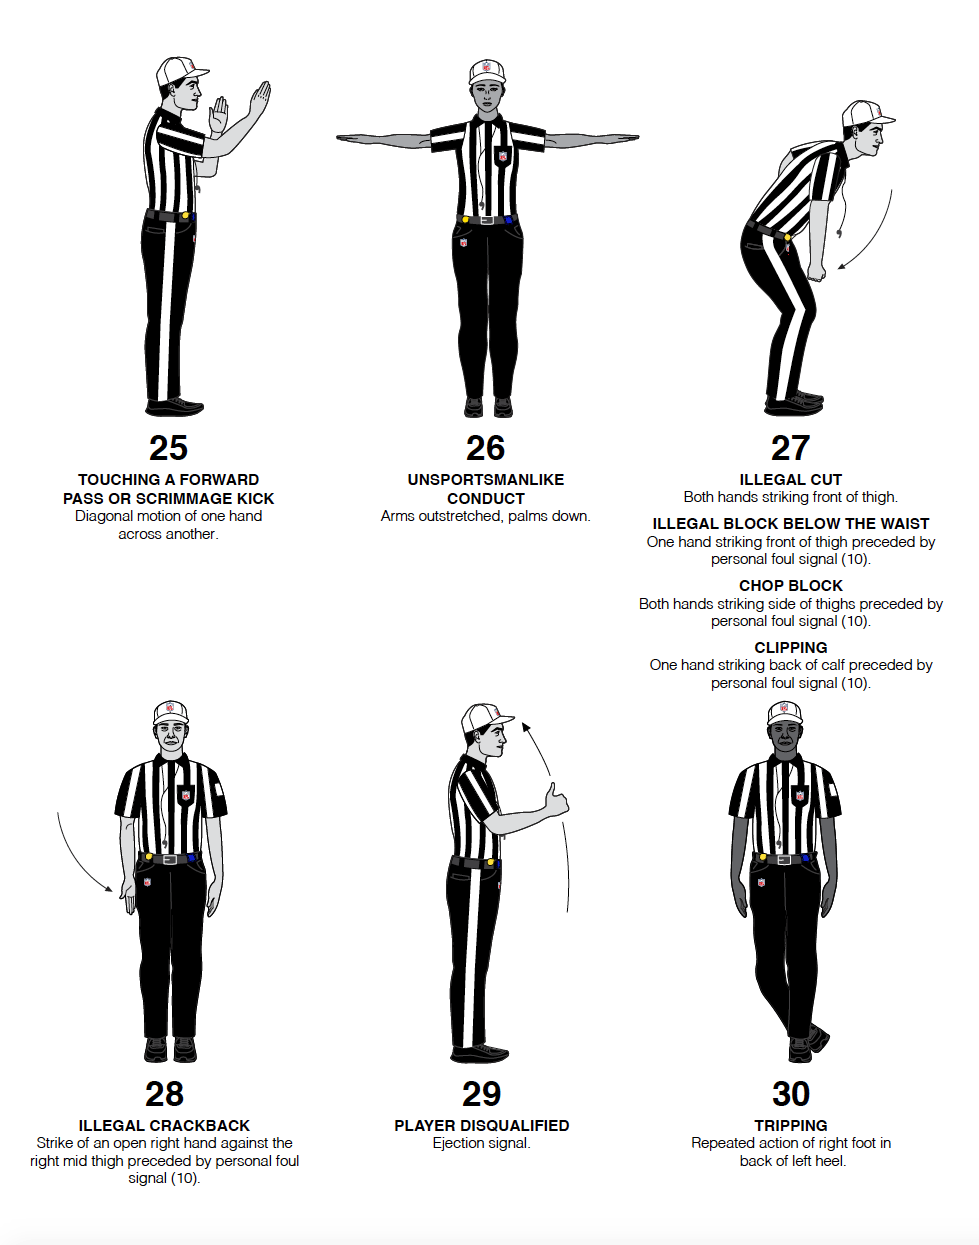 image about Hand and Foot Rules Printable named 2019 NFL Rulebook NFL Soccer Functions